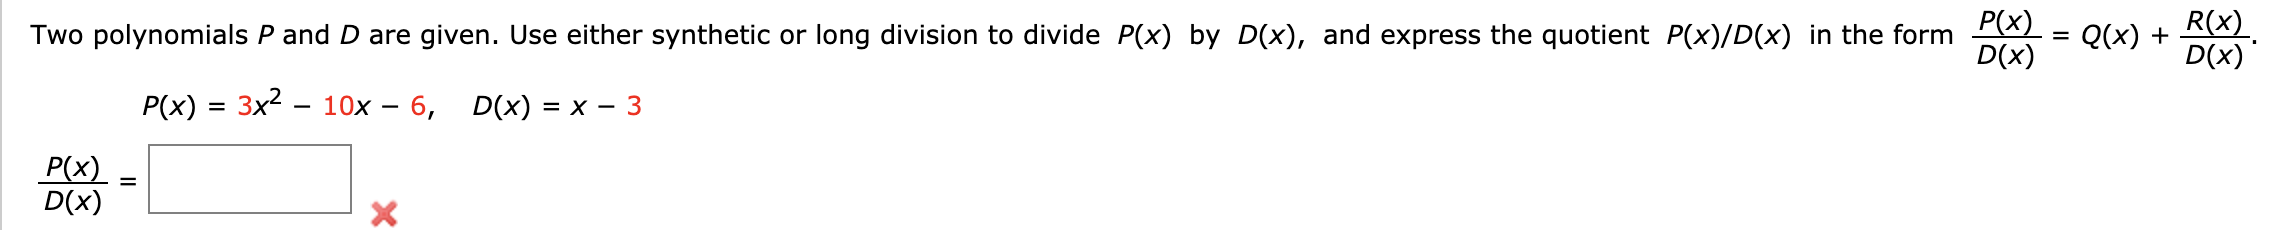 P(x) D(x) R(x) D(x) Two polynomials P and D are given. Use either synthetic or long division to divide P(x) by D(x), and express the quotient P(x)/D(x) in the form Q(x) = 10x 6, P(x) 3x2 D(x) = X 3 P(x) D(x)